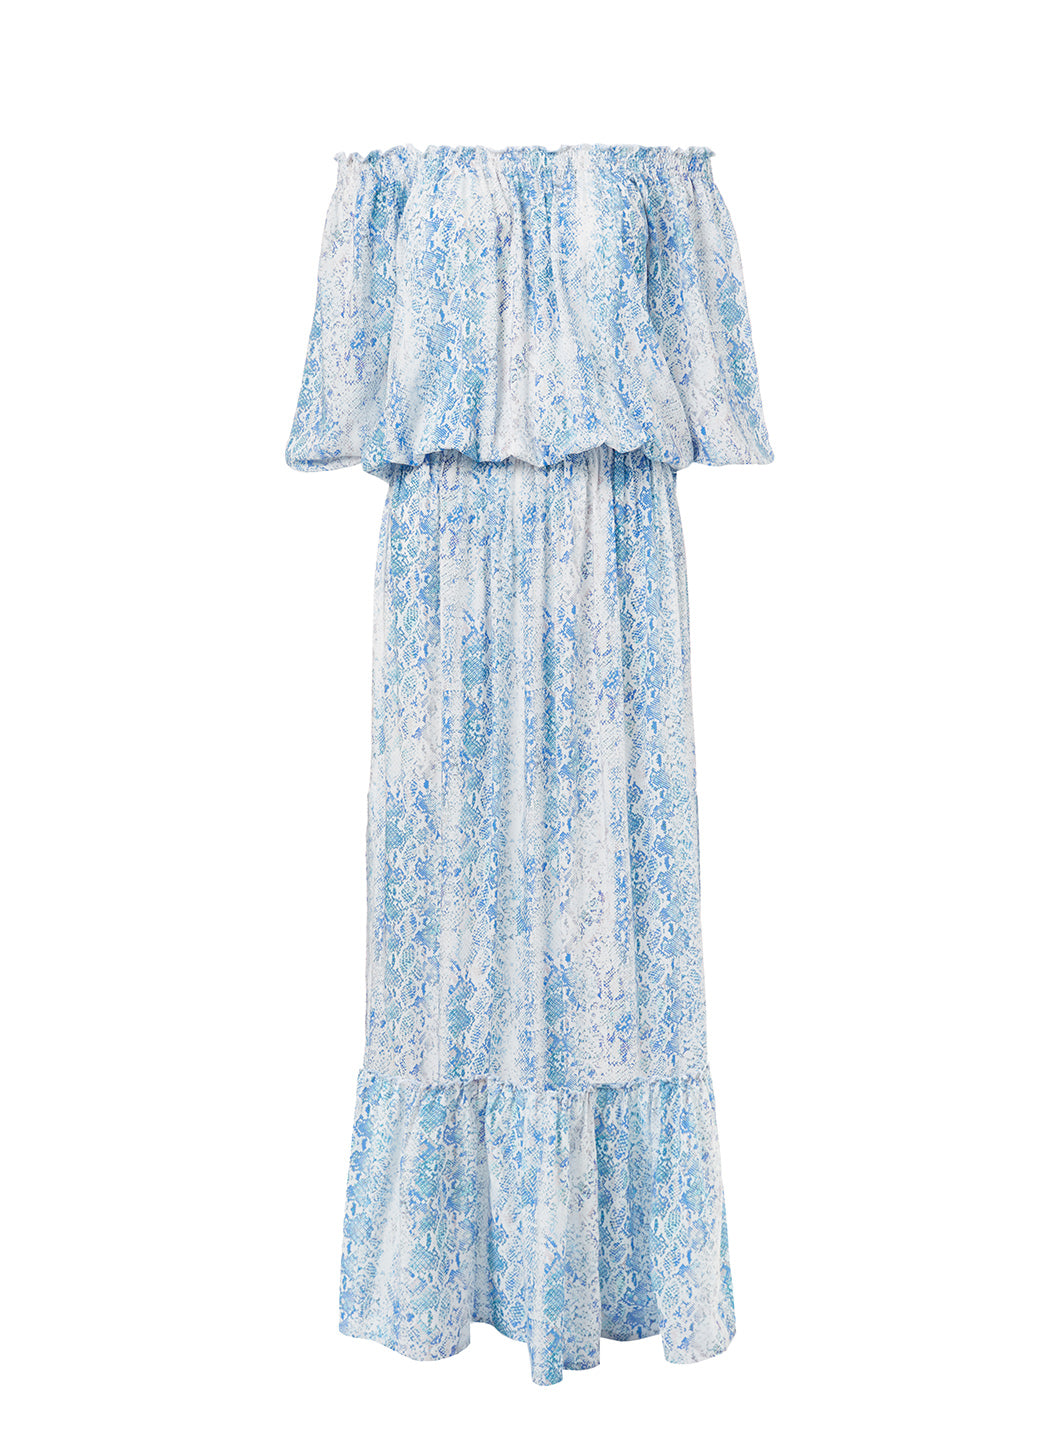 Faith Serpente Off The Shoulder Frill Maxi Dress - Melissa Odabash Dresses & Kaftans